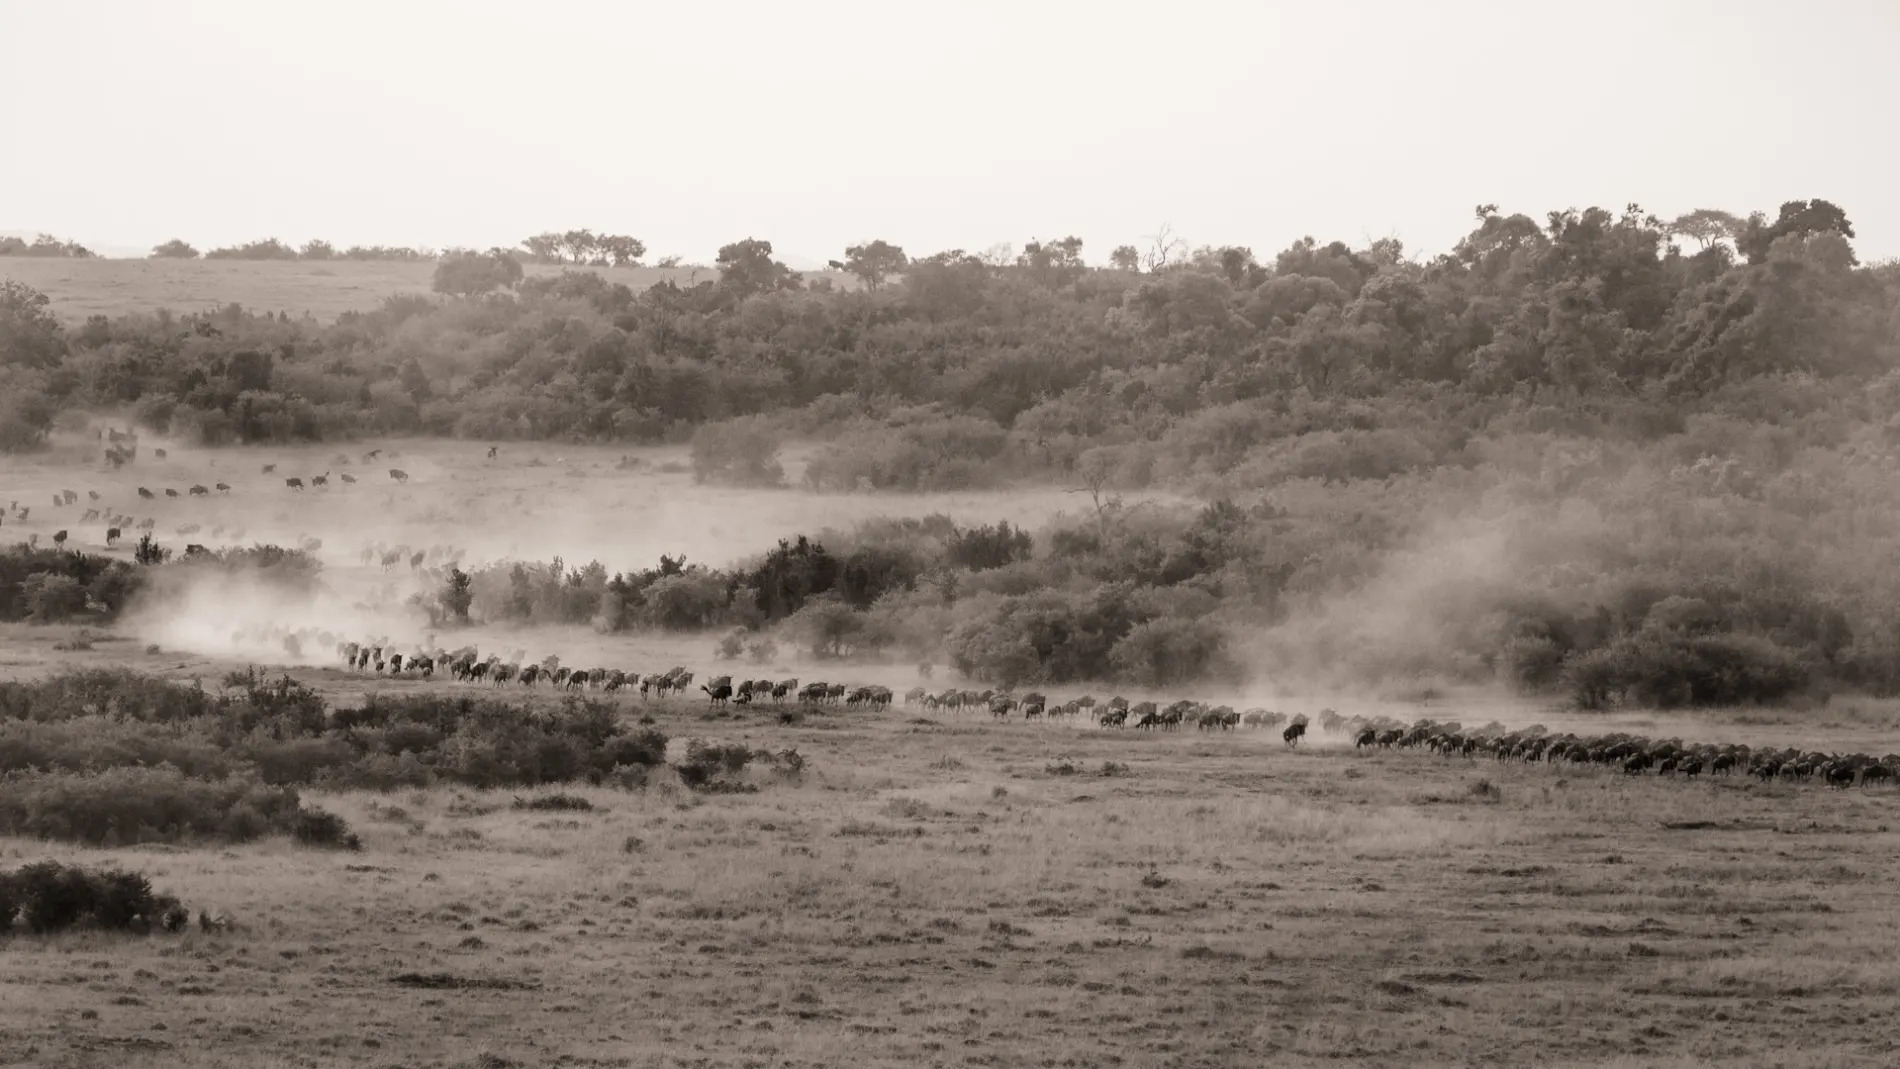 wildebeest coming black and white